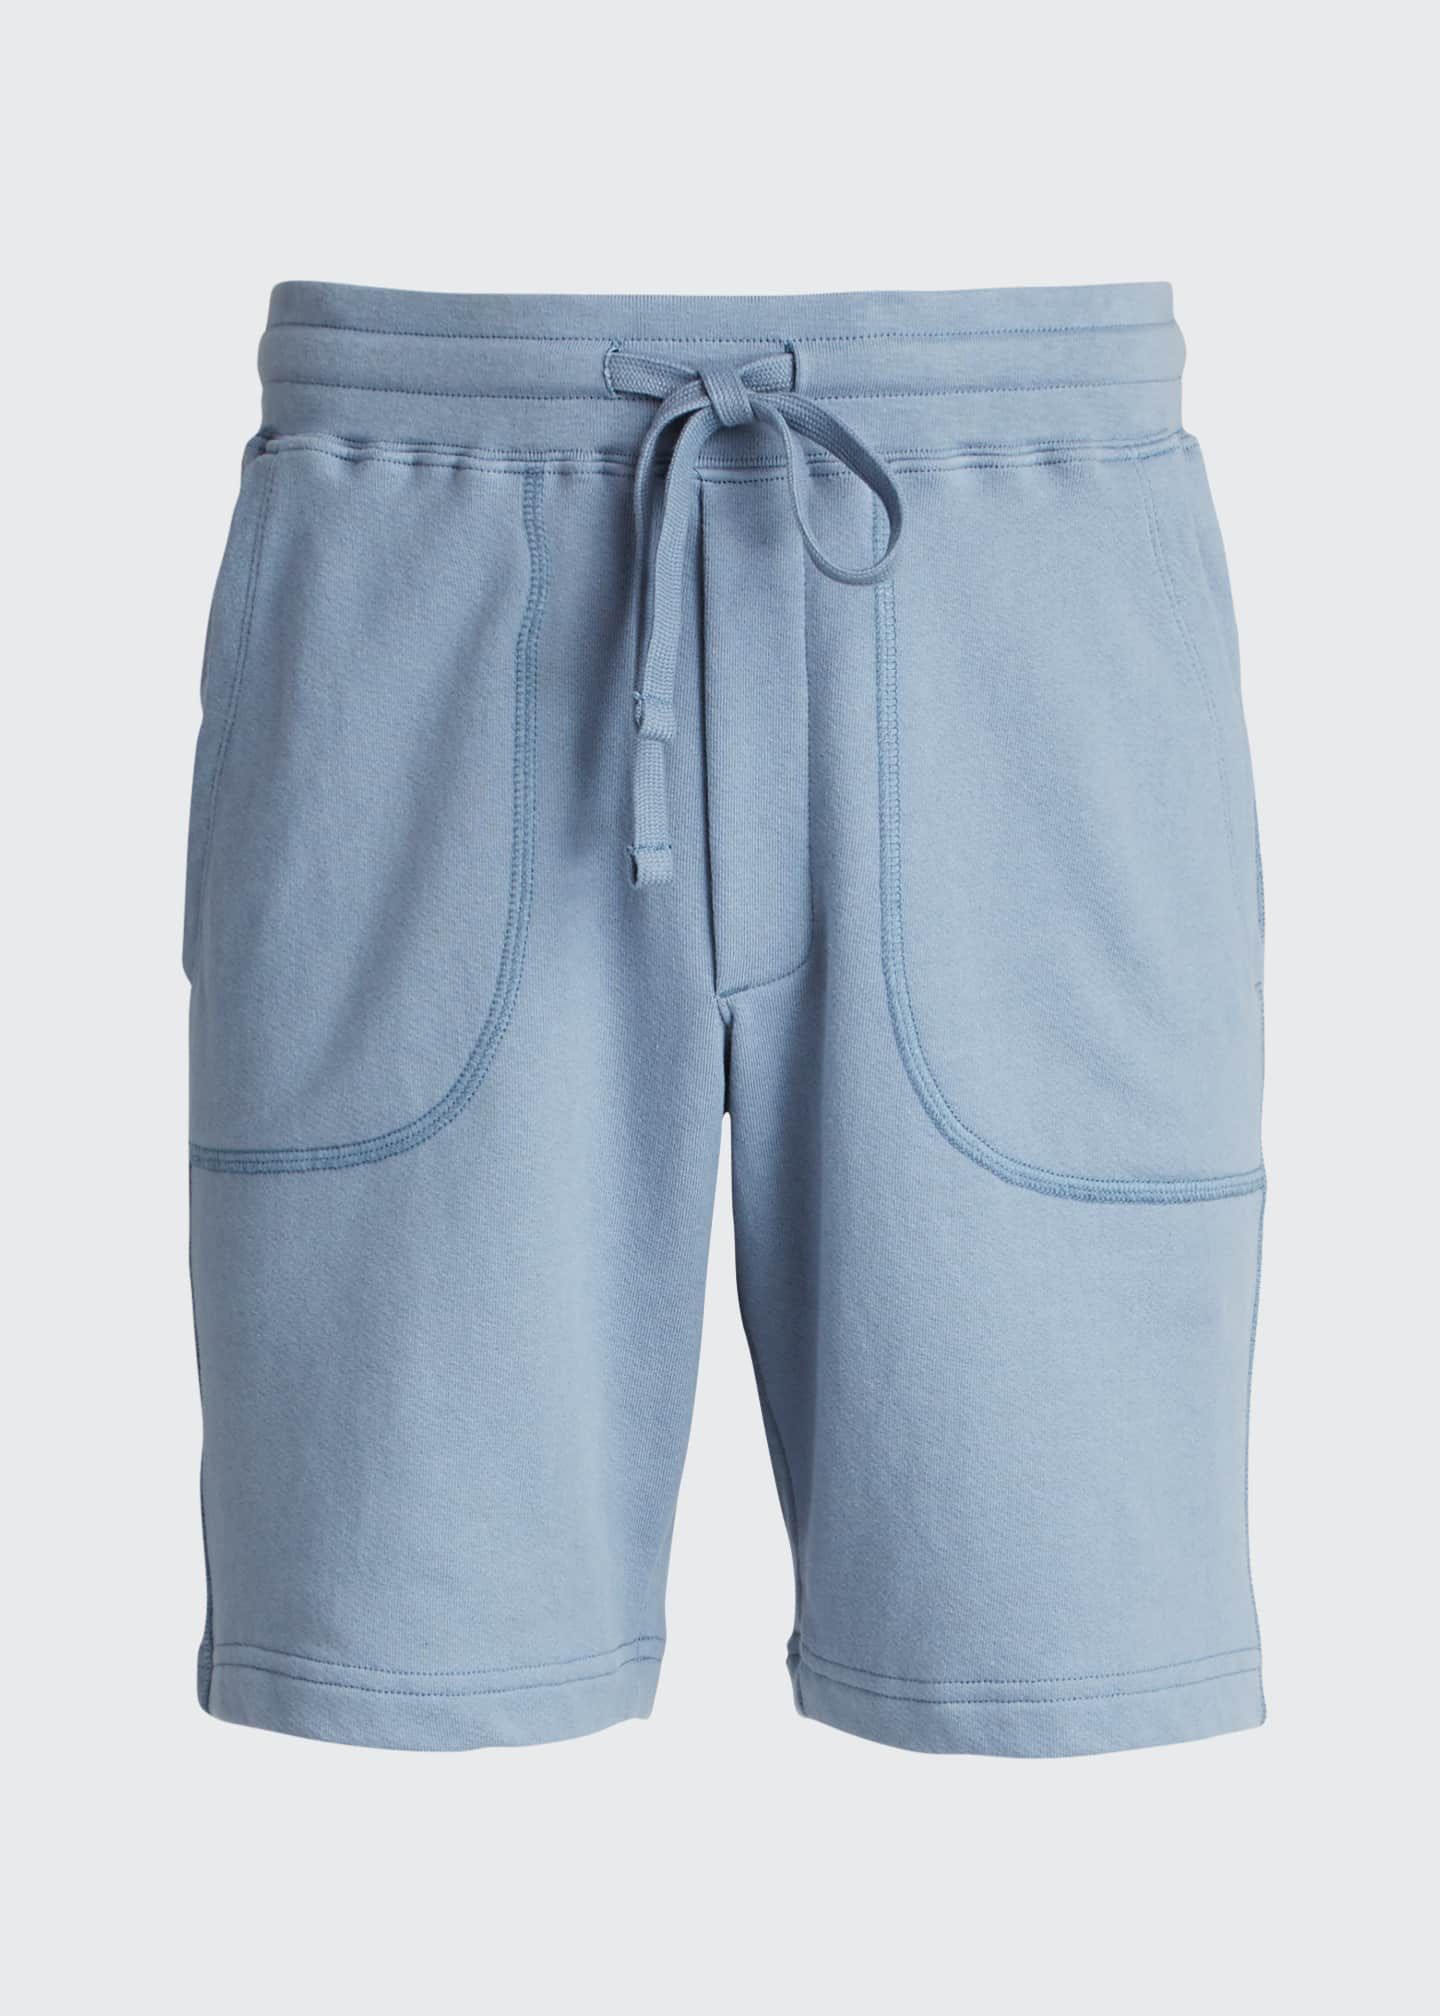 Image 5 of 5: Men's Garment-Dyed Drawstring Shorts